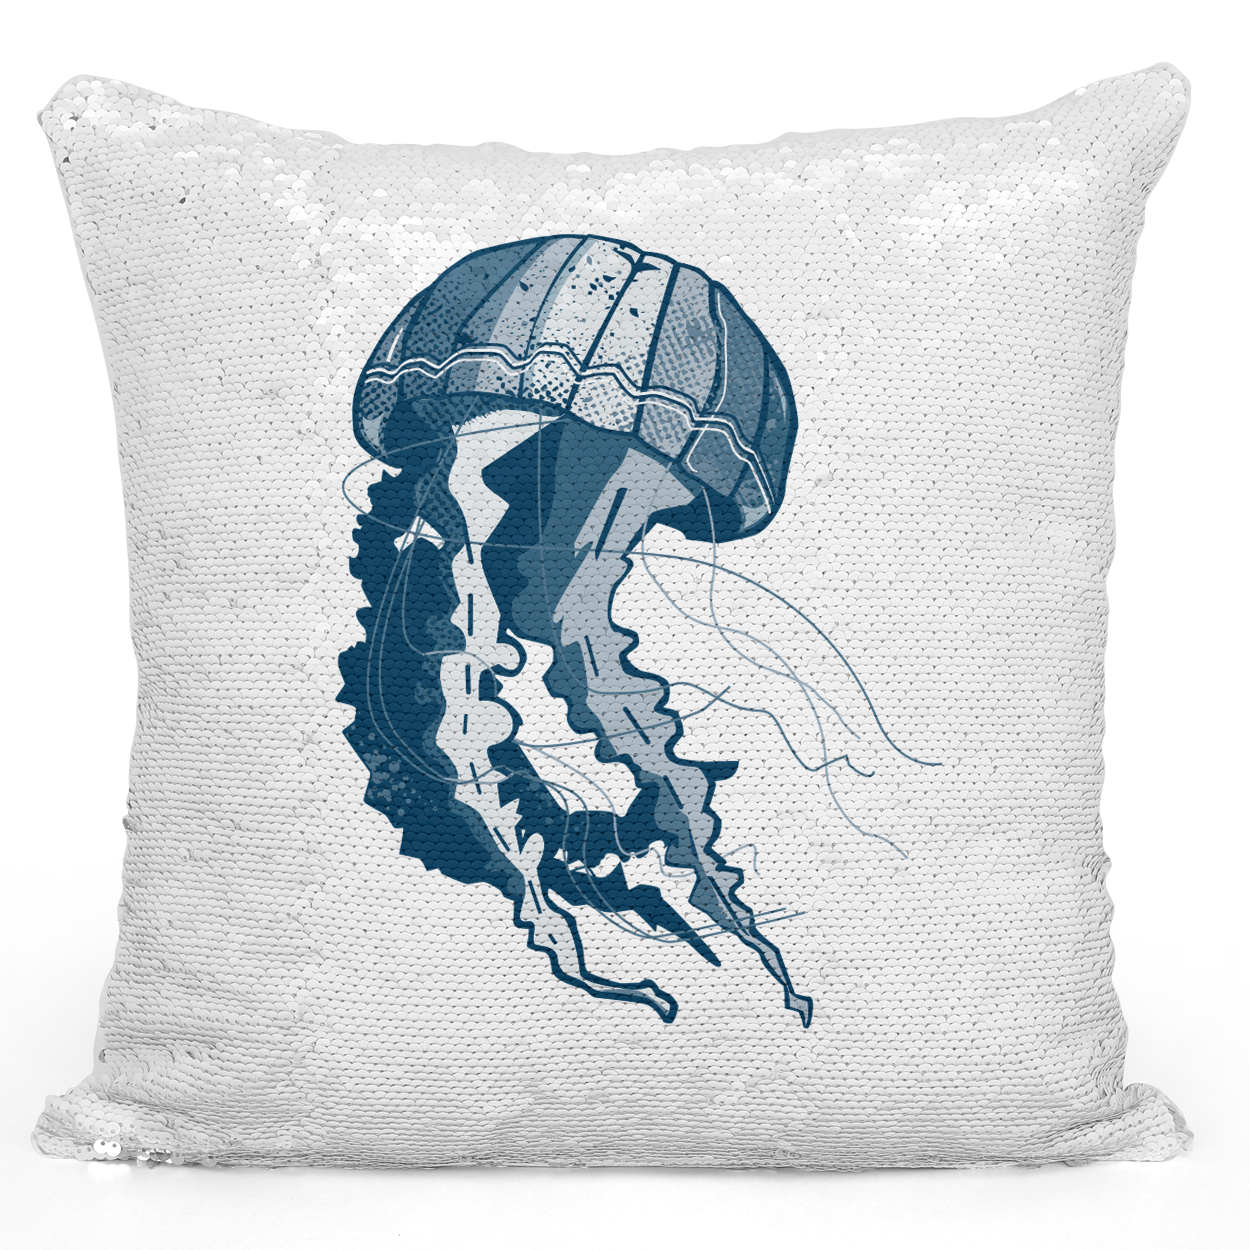 Sequin Pillow Magic Mermaid Throw Pillow Beach House Pillow Jelly Fish Natical Marine Animals Sea Life Pillow - Pure White Printed 16 x 16 inch Square Home Decor Couch Pillow Loud Universe